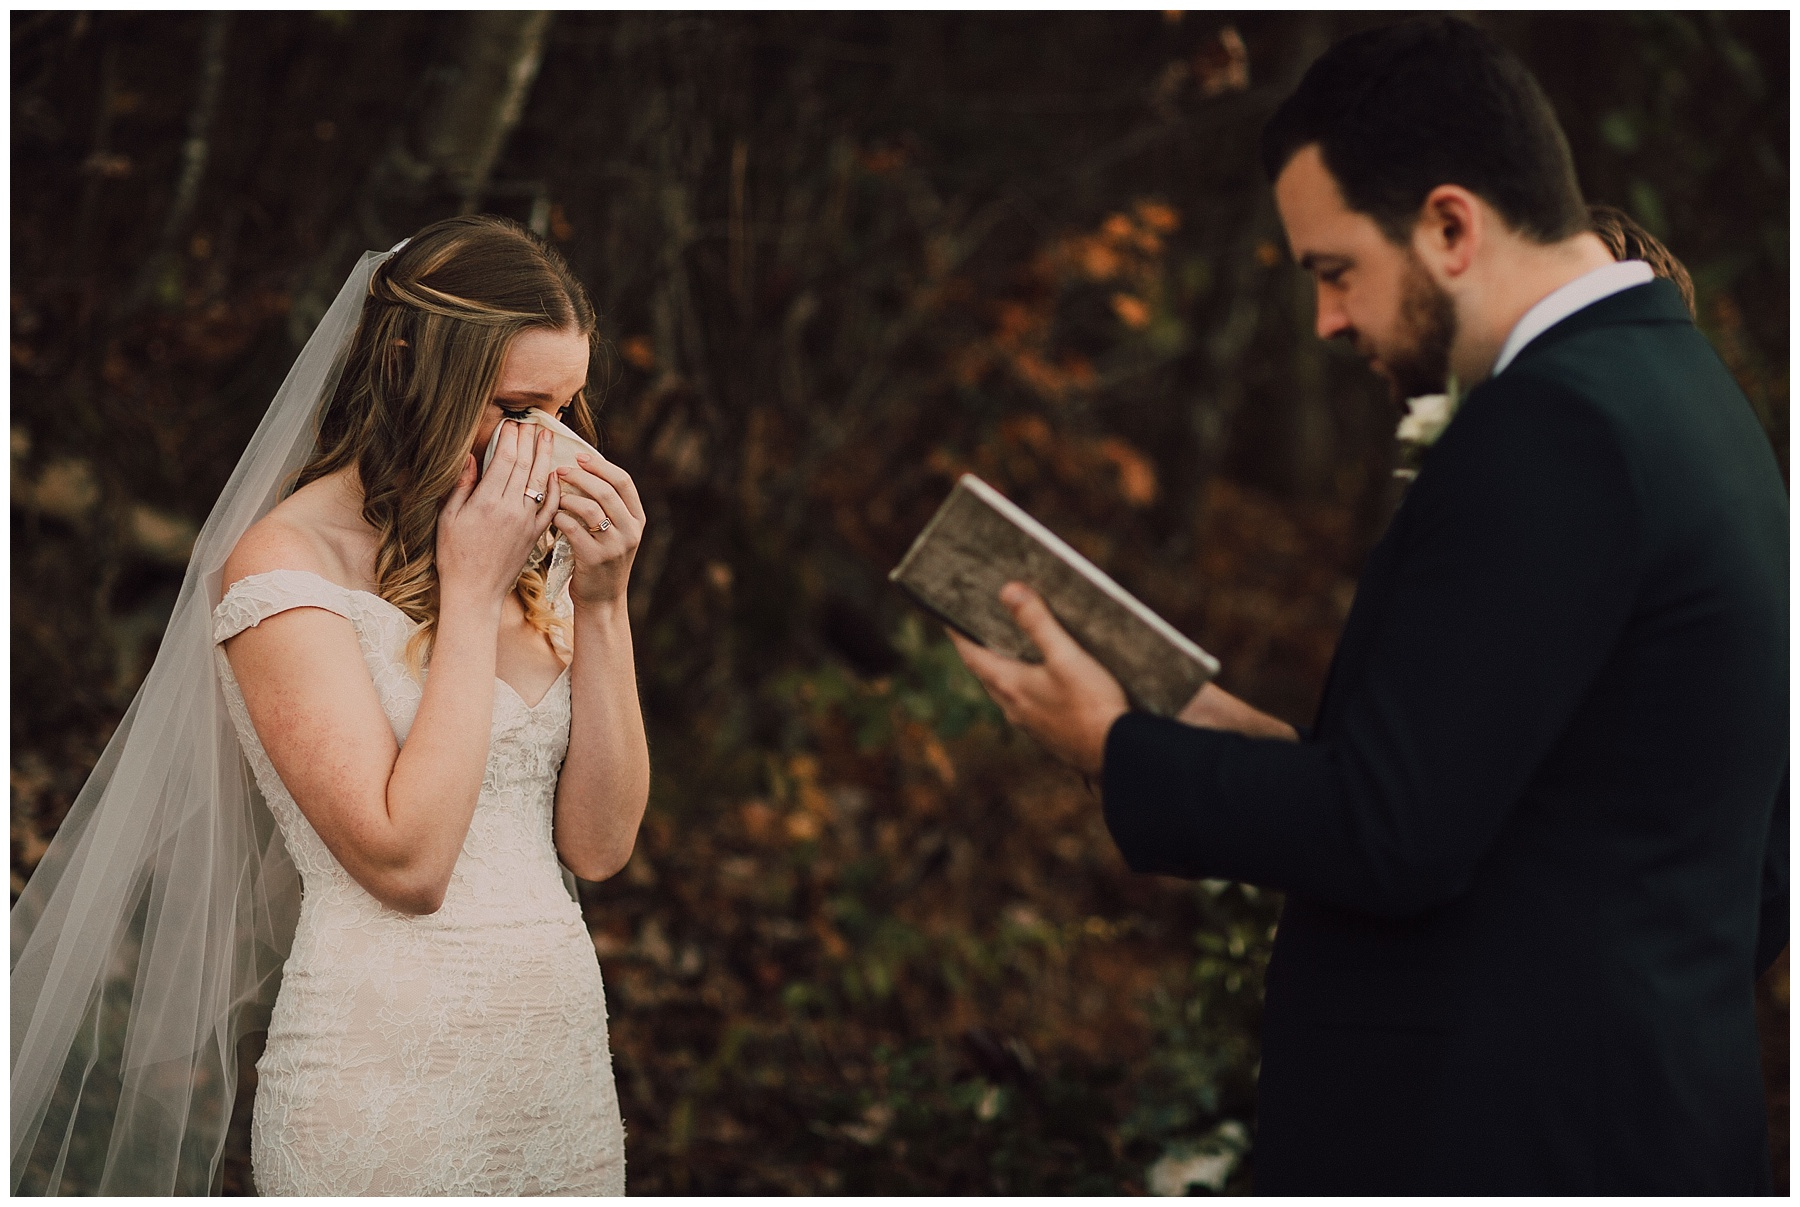 intimate vow elopement wedding